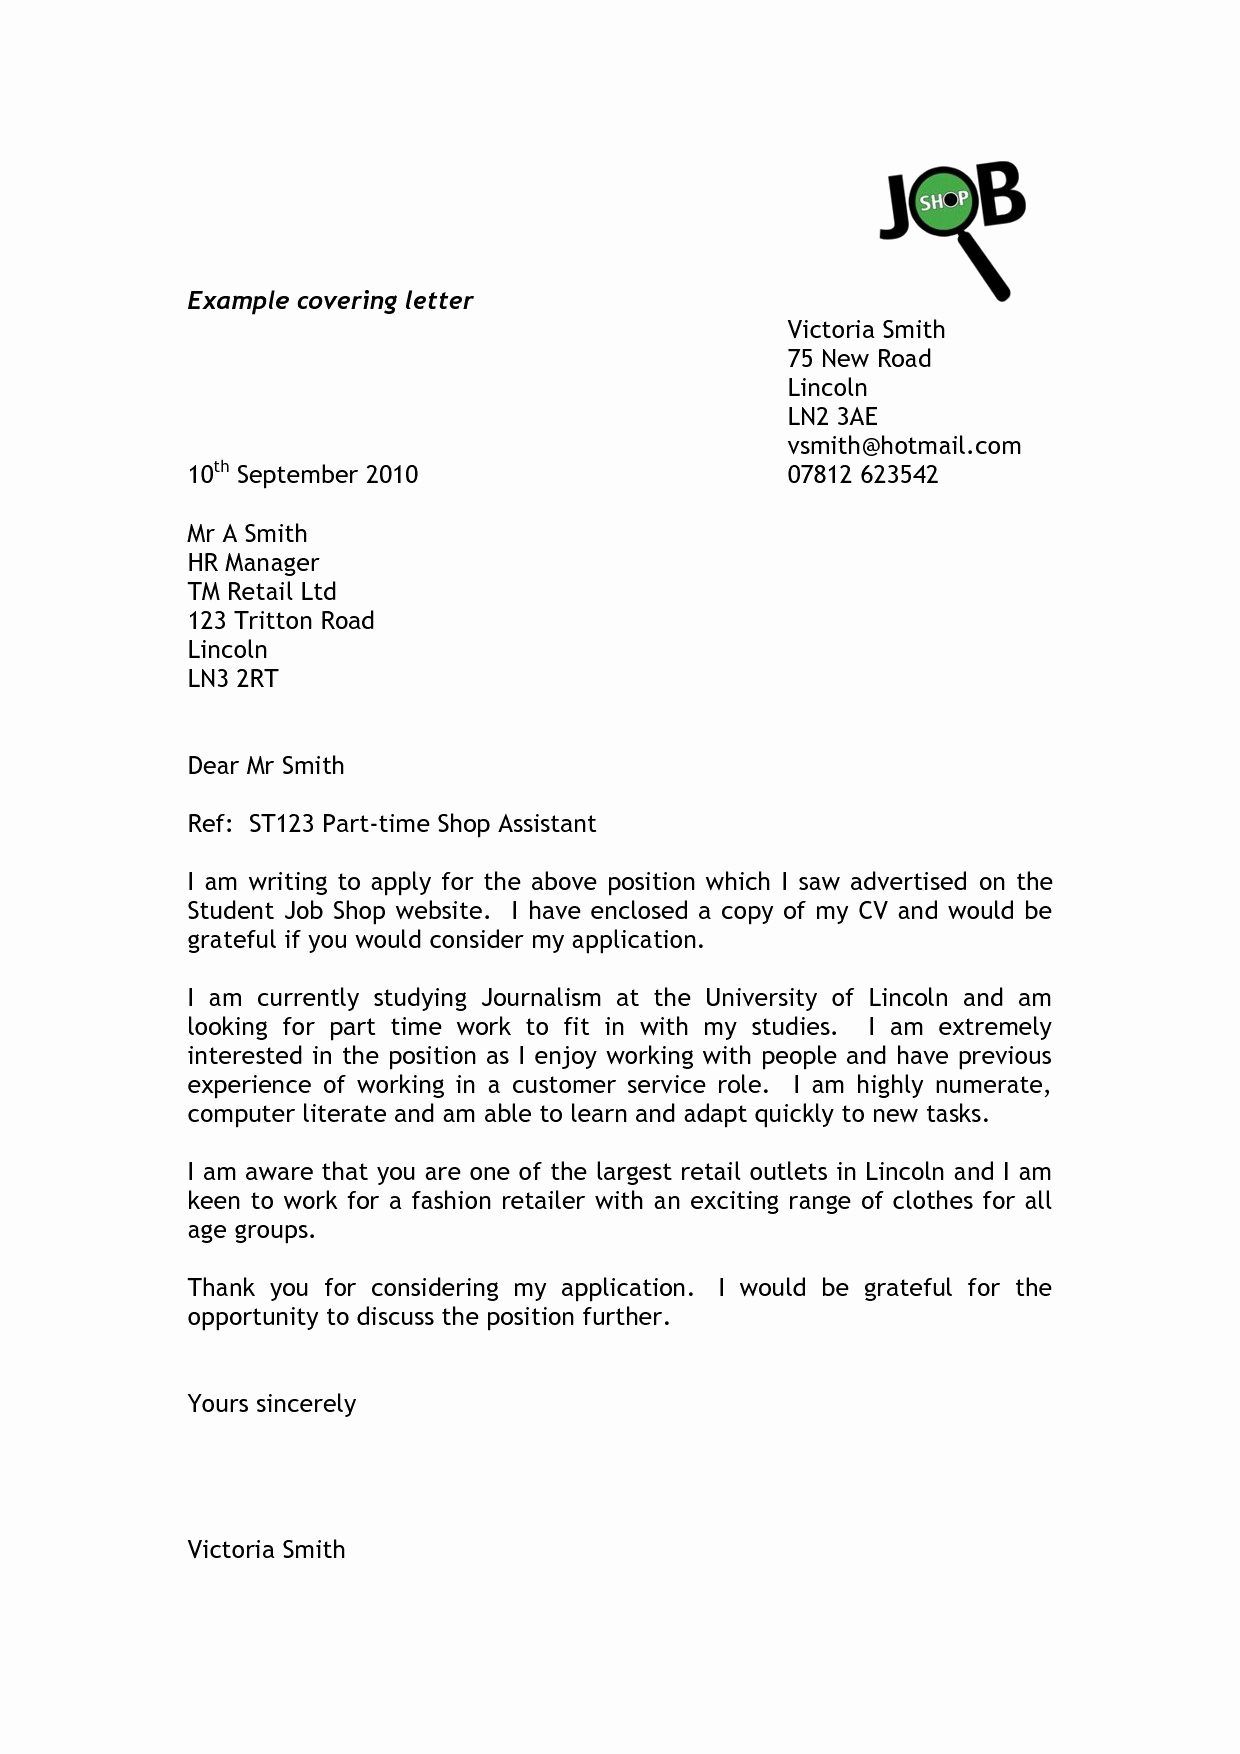 General Cover Letter Template - General Cover Letter for Unknown Position